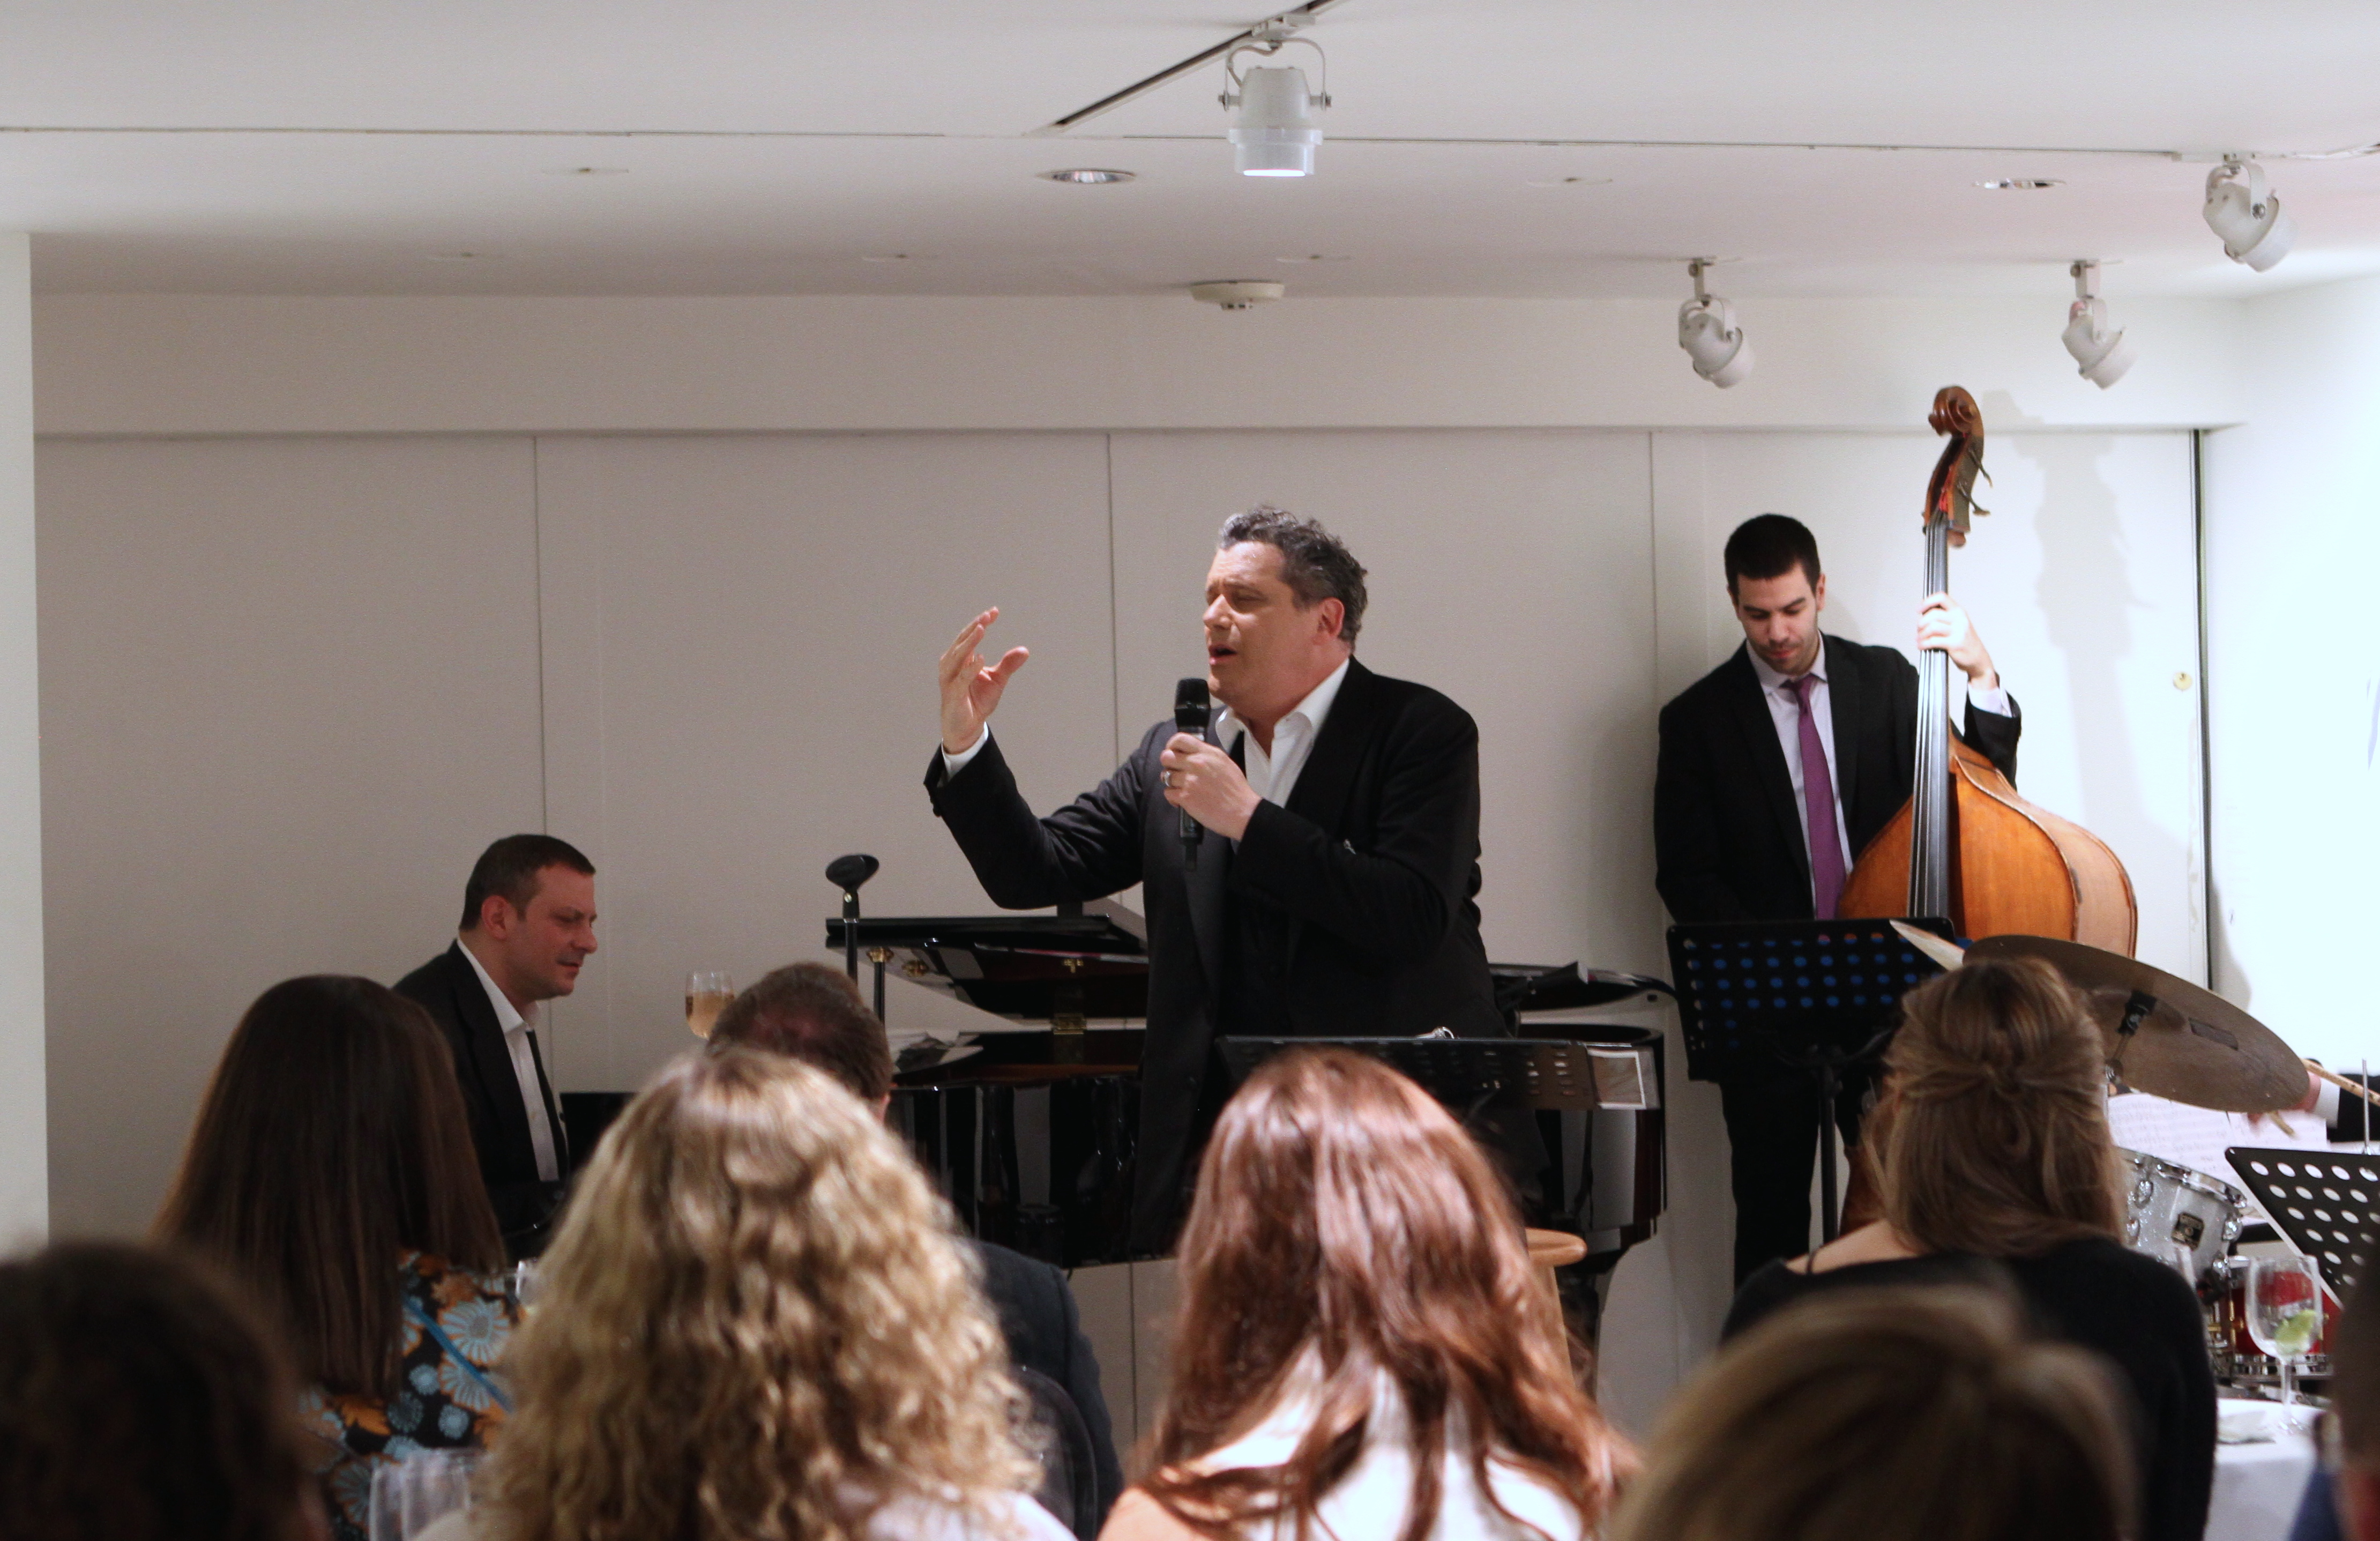 Works and Process at the Guggenheim Presents Isaac Mizrahi and the Ben Waltzer Quartet (3)